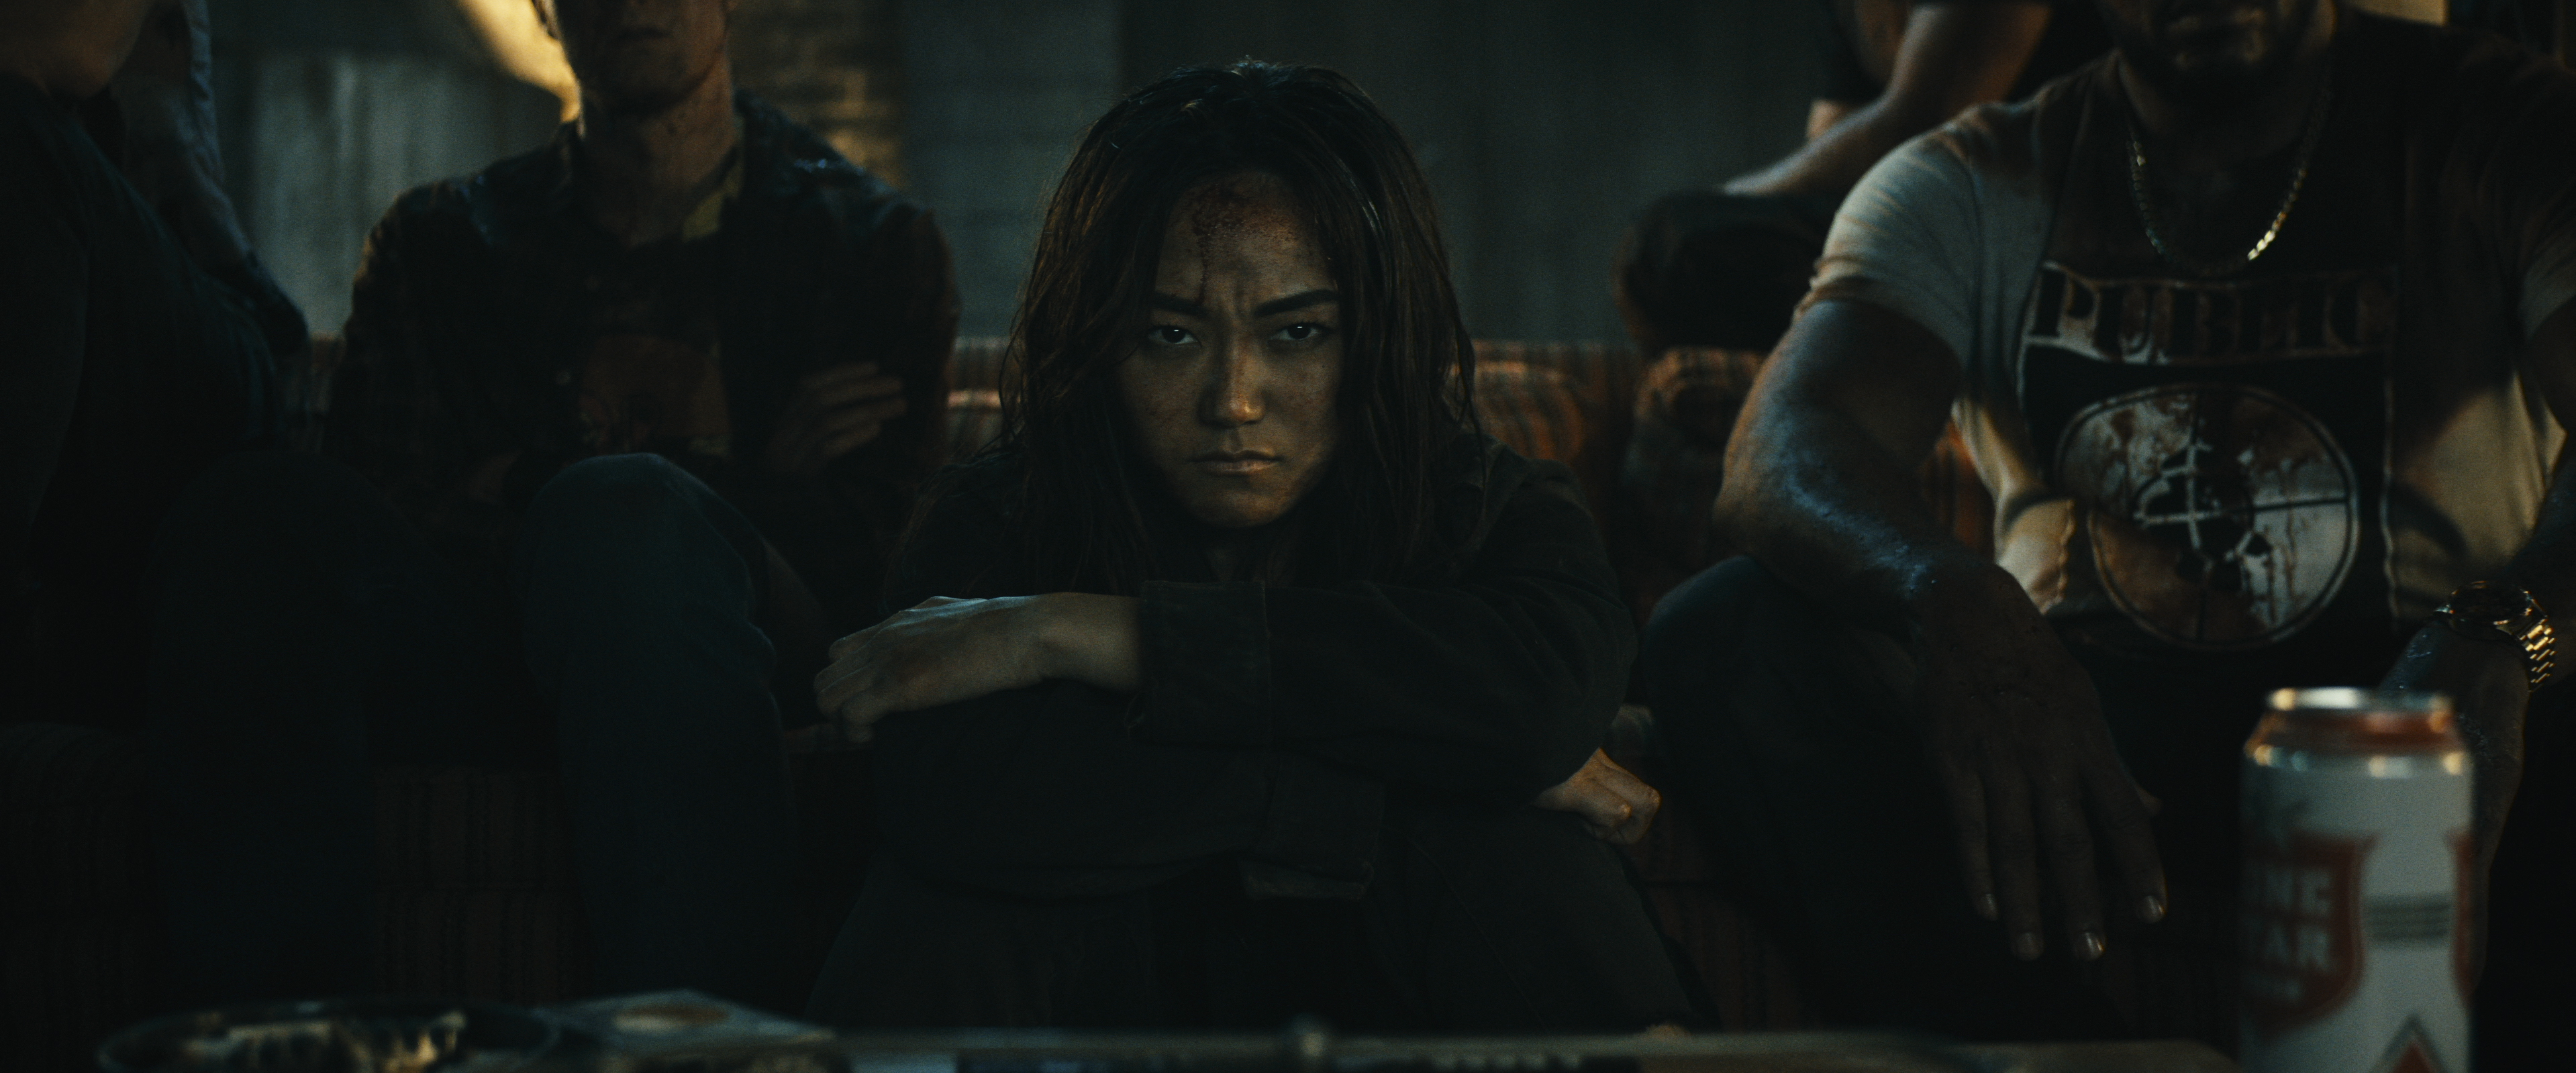 Karen Fukuhara in Over the Hill with the Swords of a Thousand Men (2020)